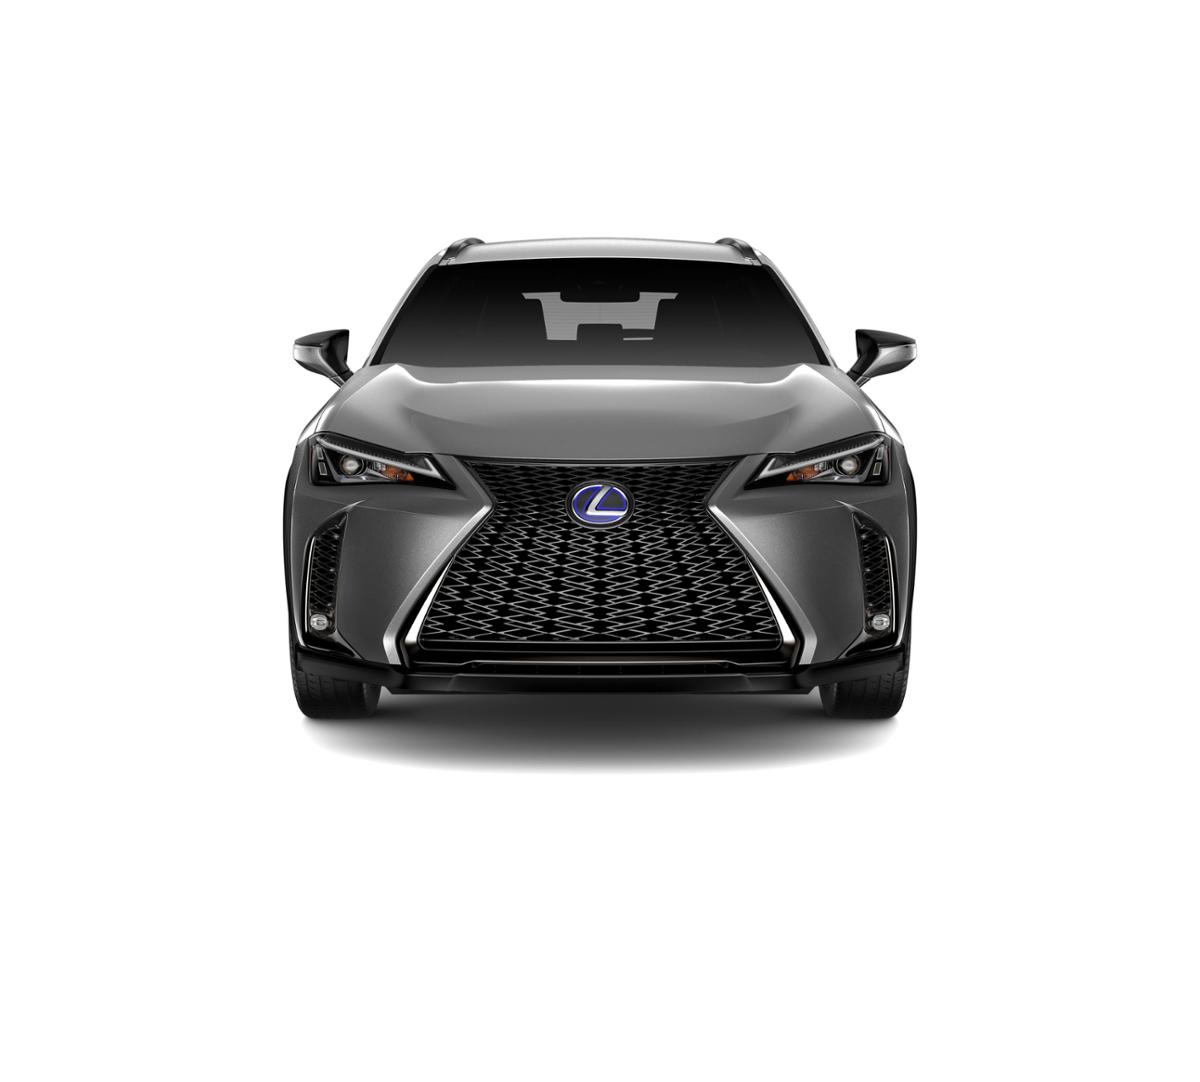 2019 Lexus UX 250h Vehicle Photo in Towson, MD 21204